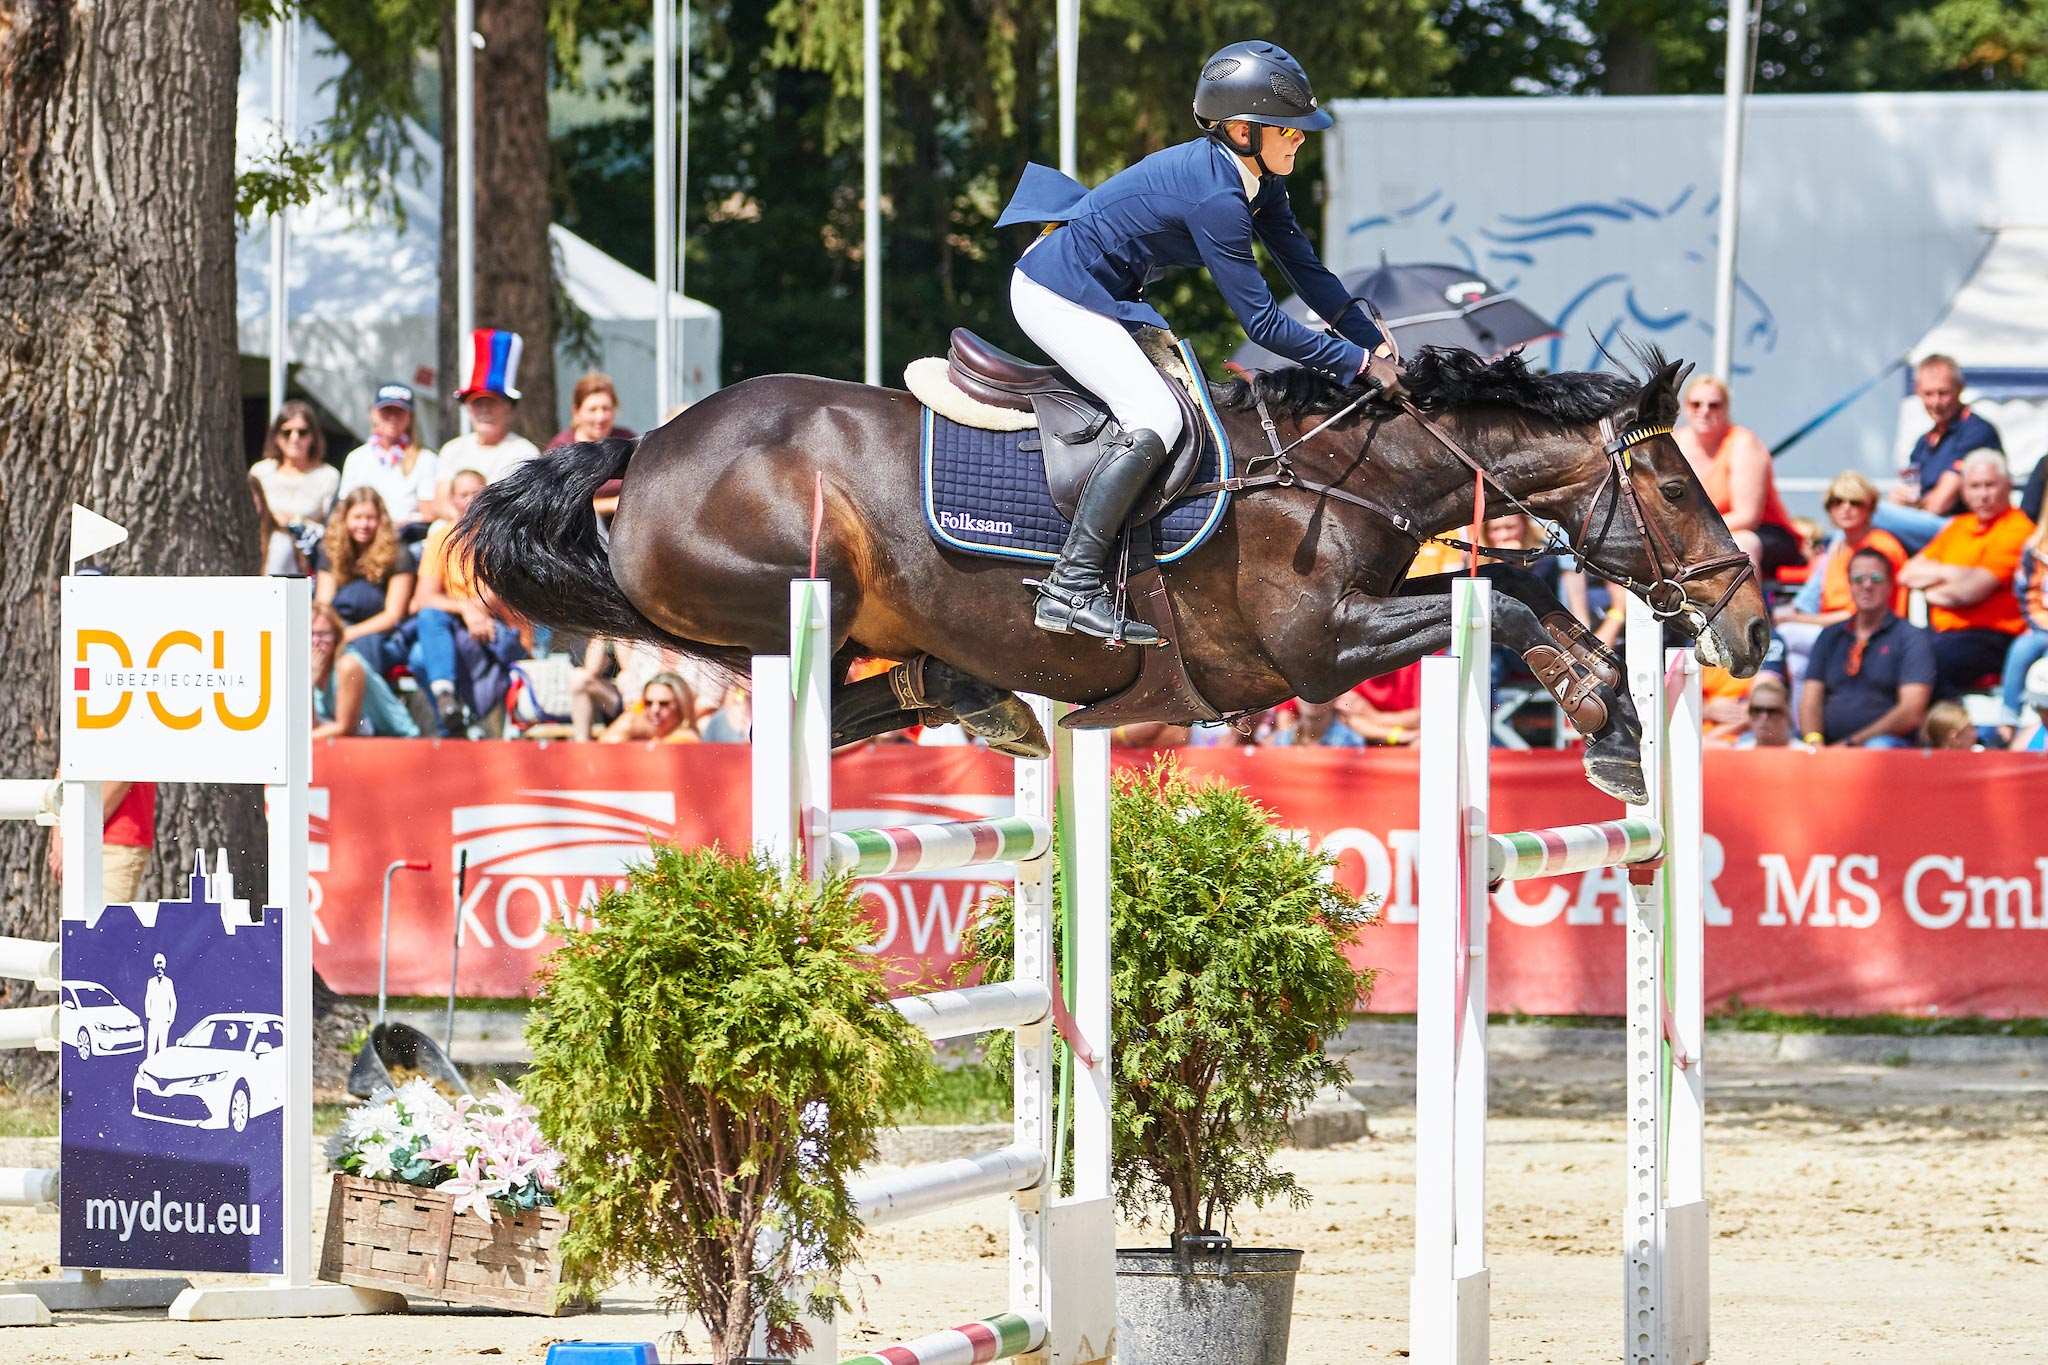 190816_eventingphoto_ganehed-ep1908161608